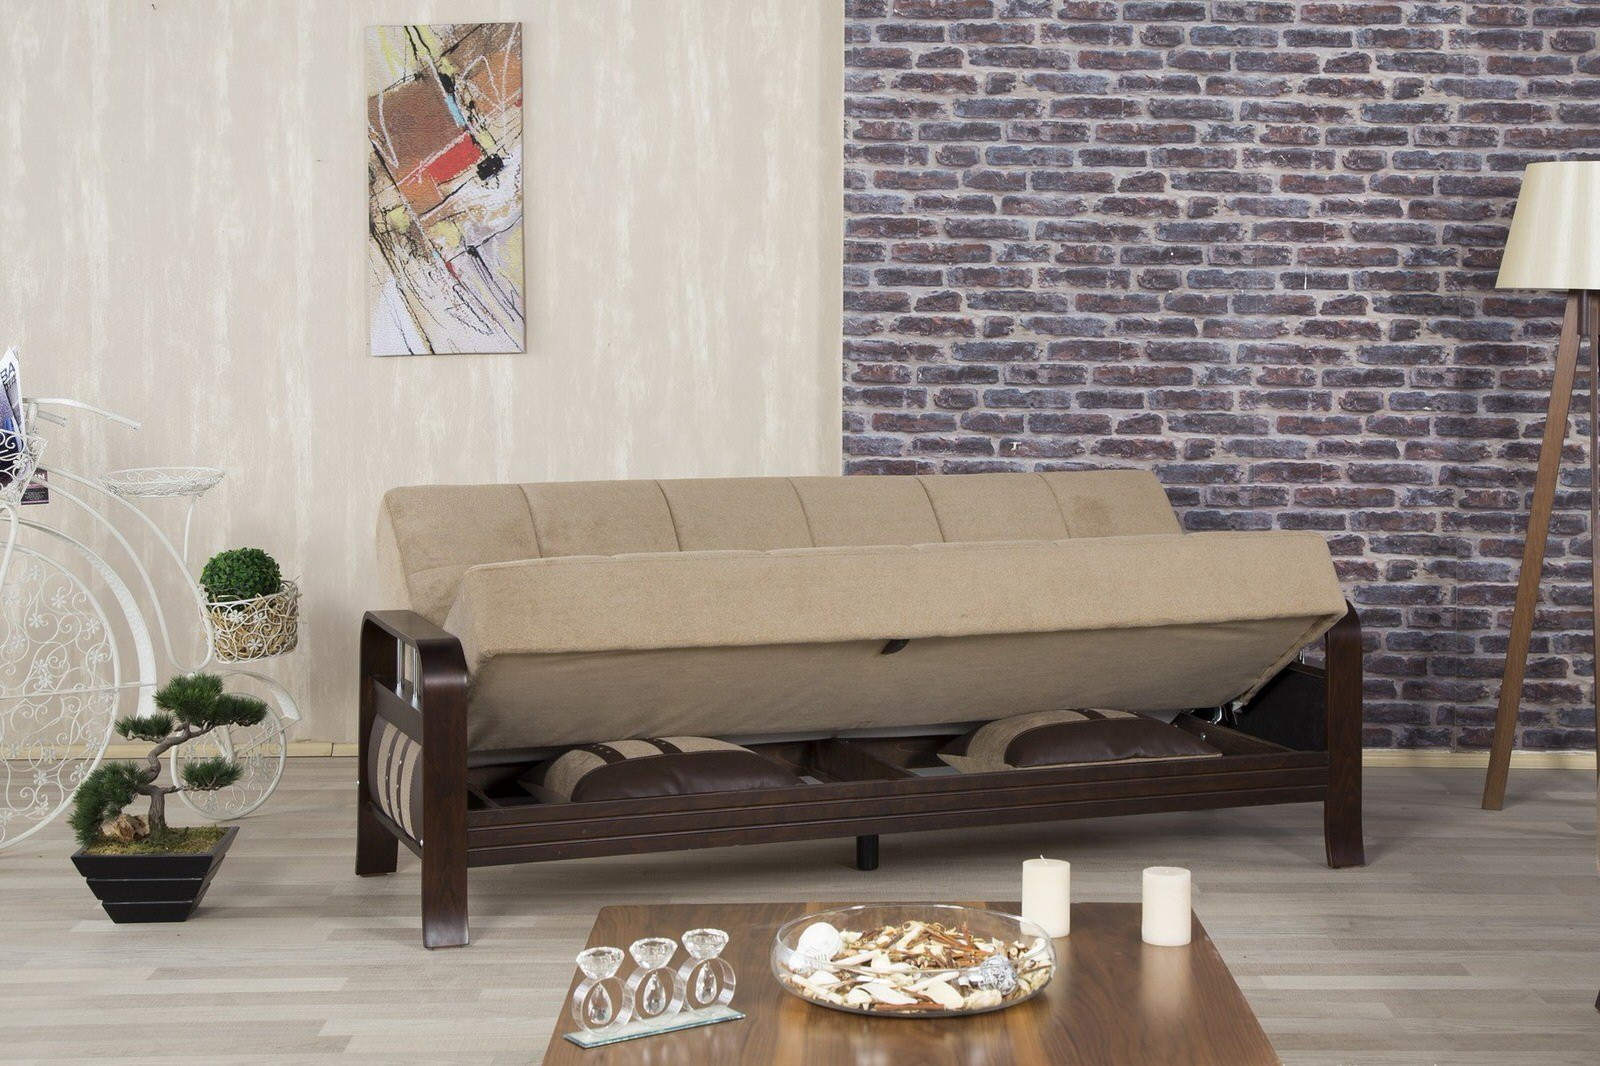 Studio NYC Magnum Brown Convertible Sofa Bed by Casamode